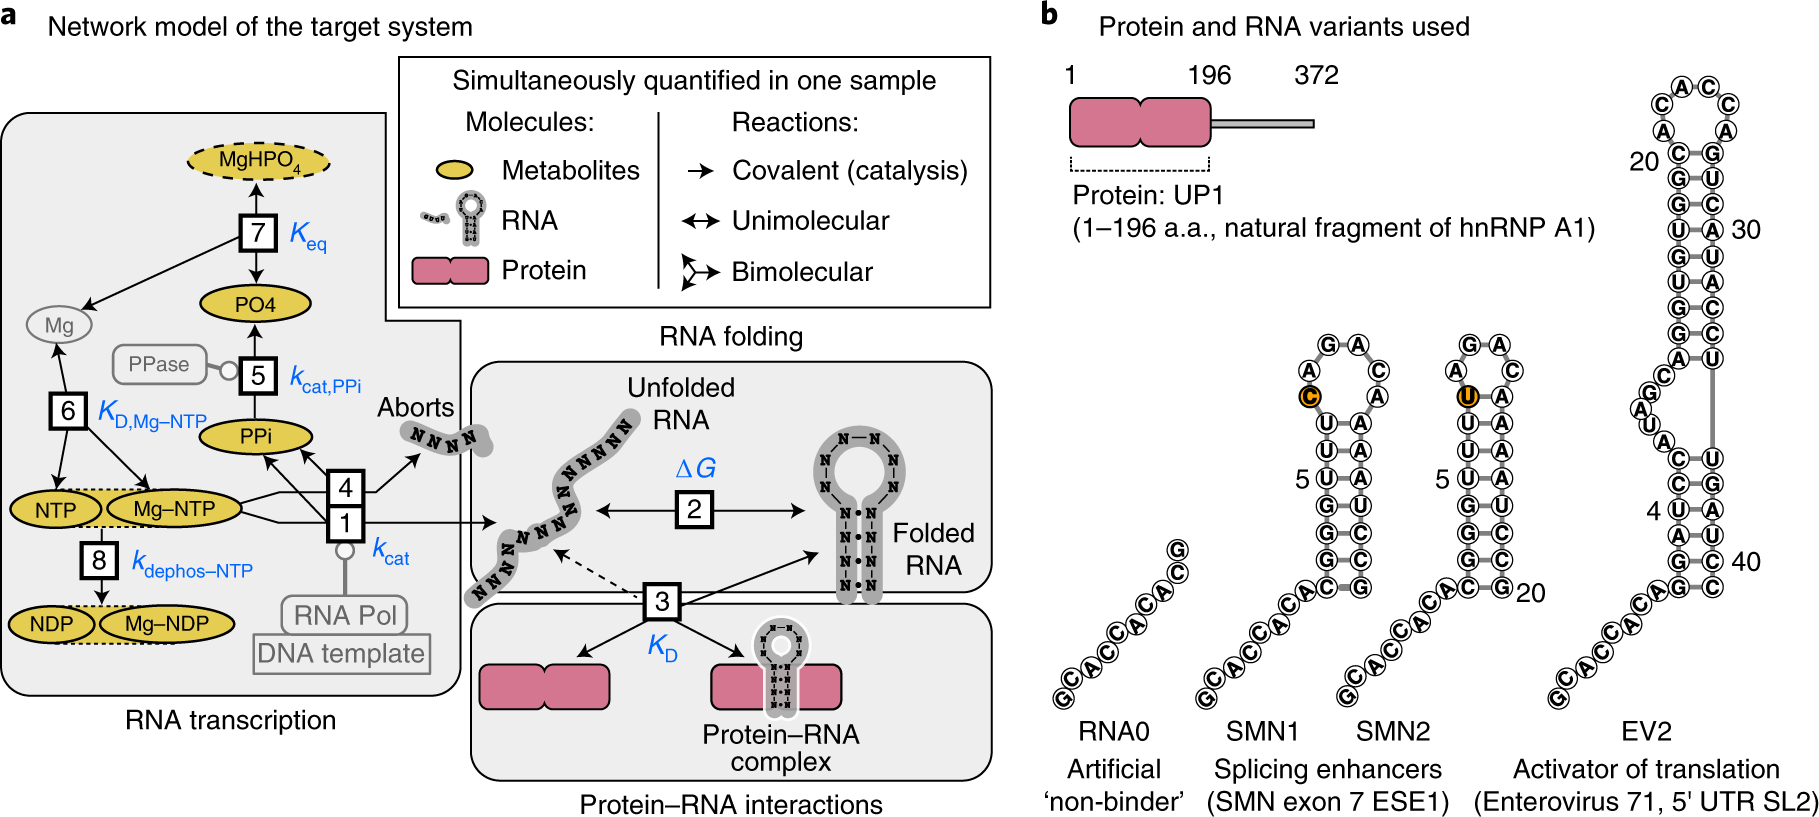 Systems NMR: single-sample quantification of RNA, proteins